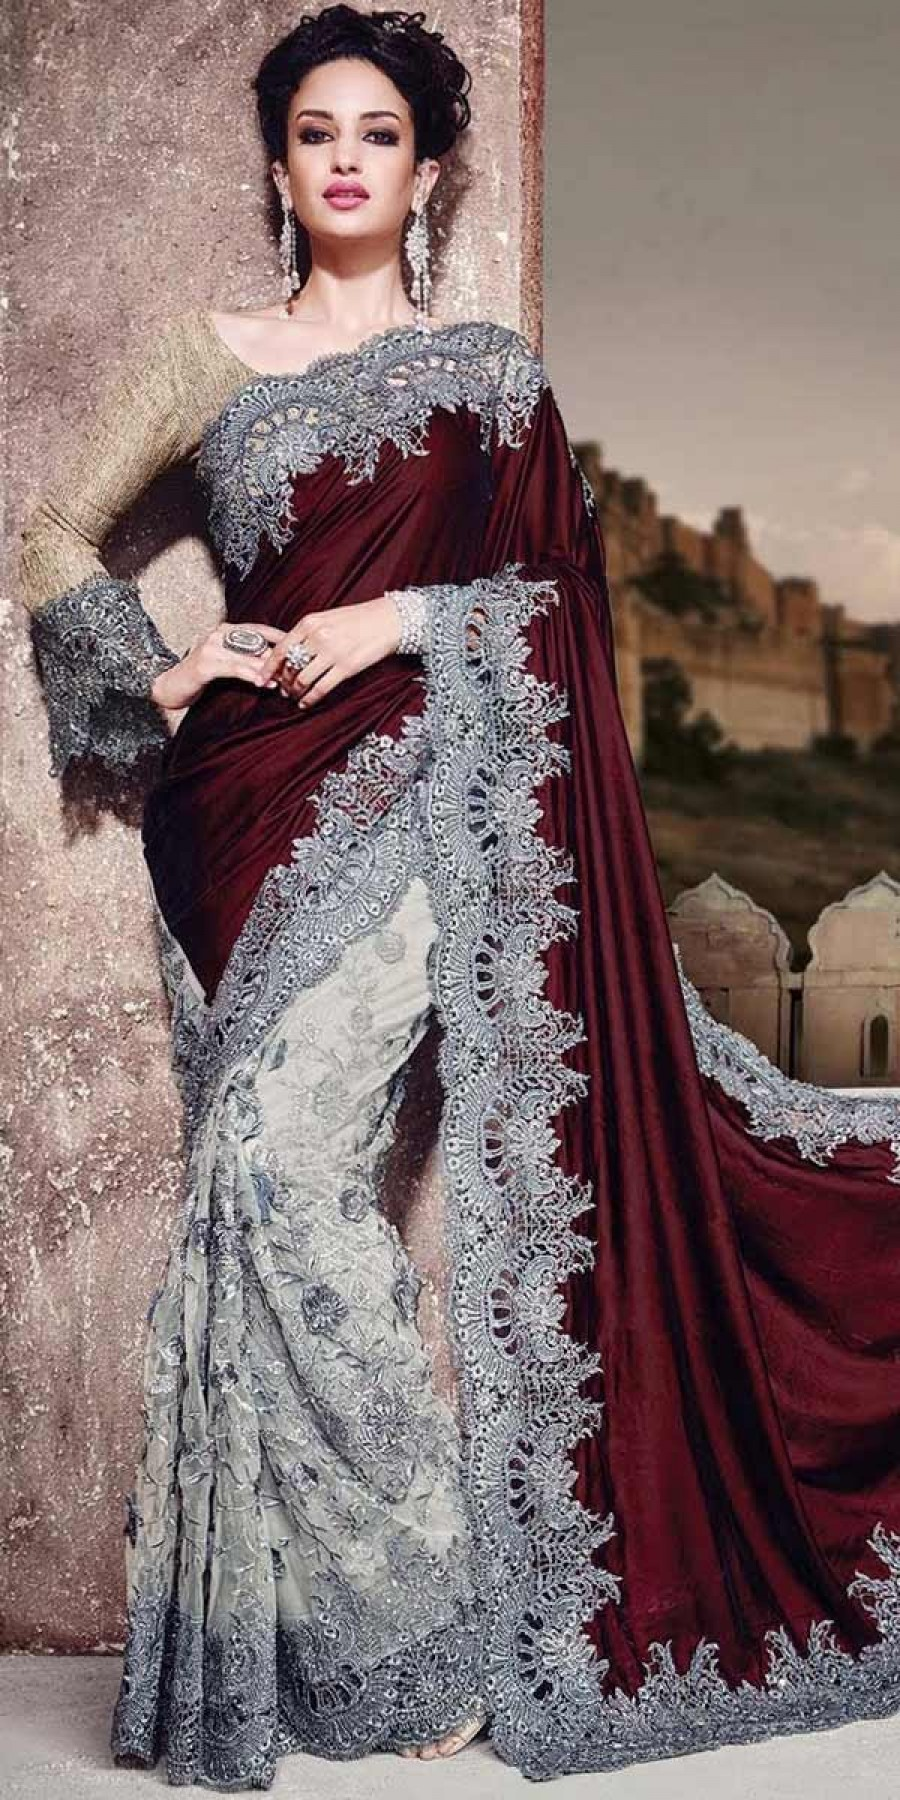 Buy Heartily Maroon And Grey Velvet Saree With Blouse. Online